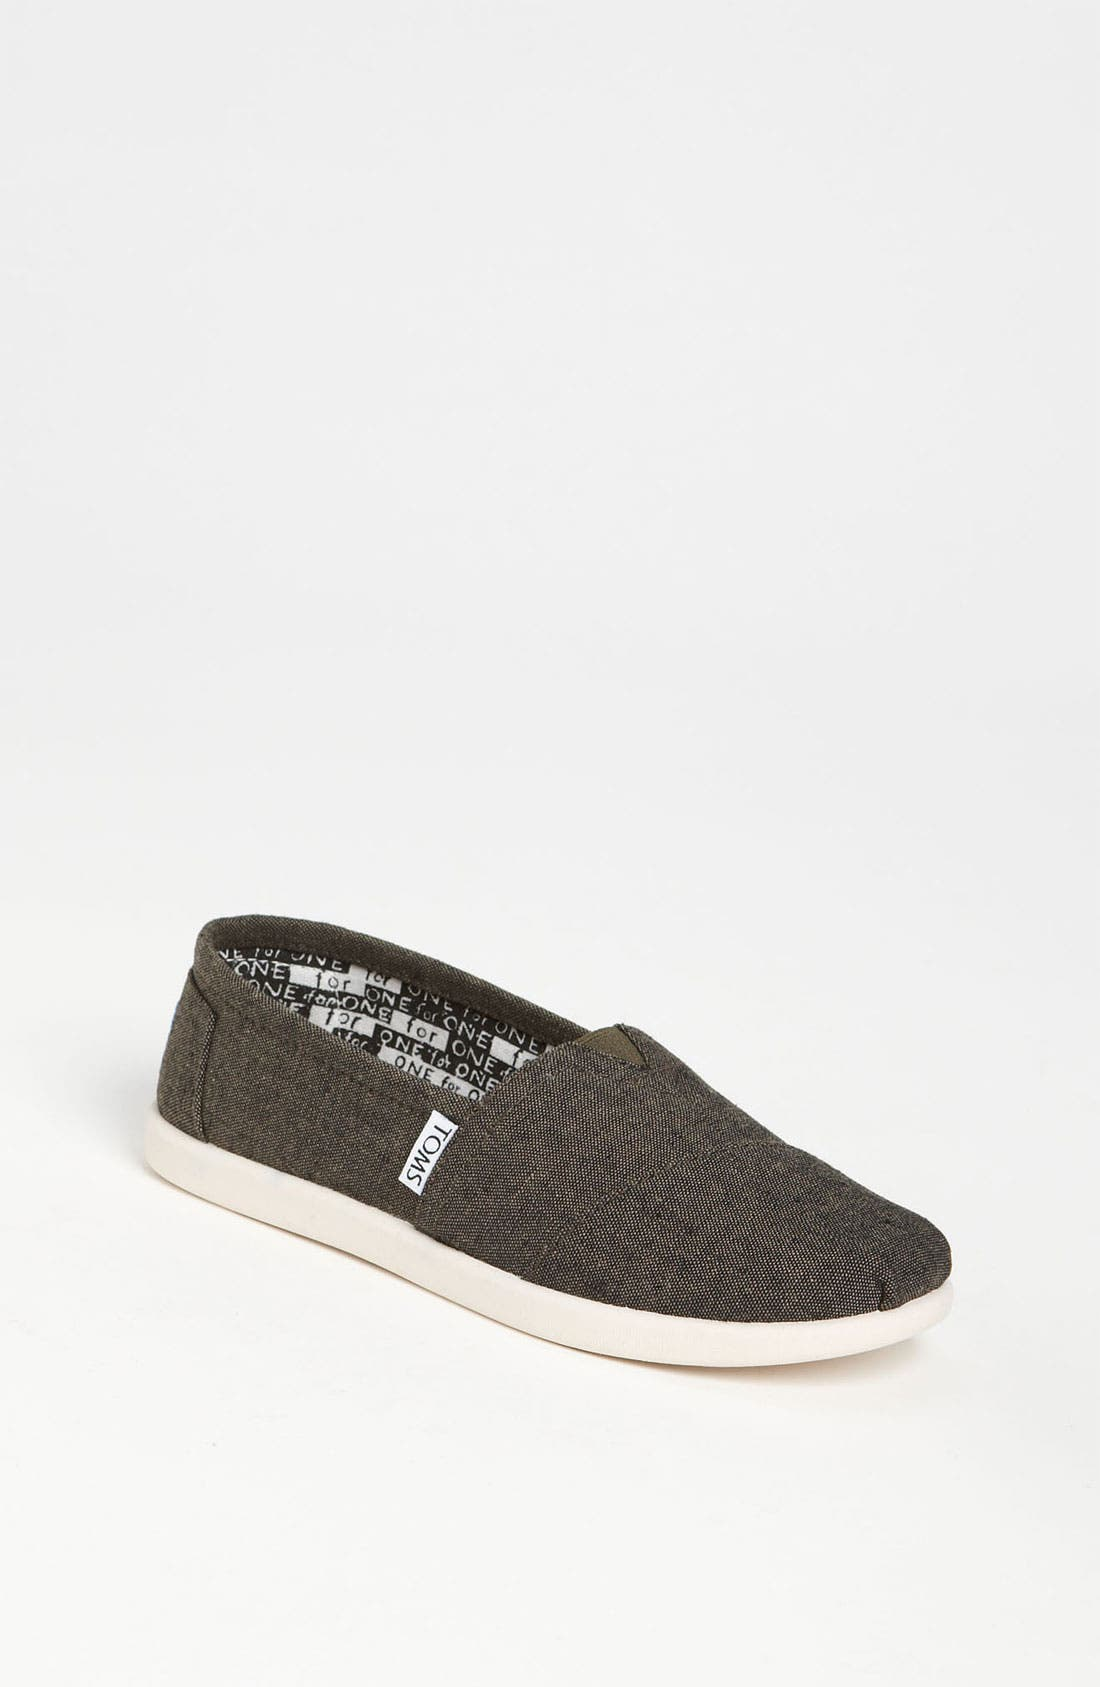 Alternate Image 1 Selected - TOMS 'Classic - Youth' Chambray Slip-On (Toddler, Little Kid & Big Kid)